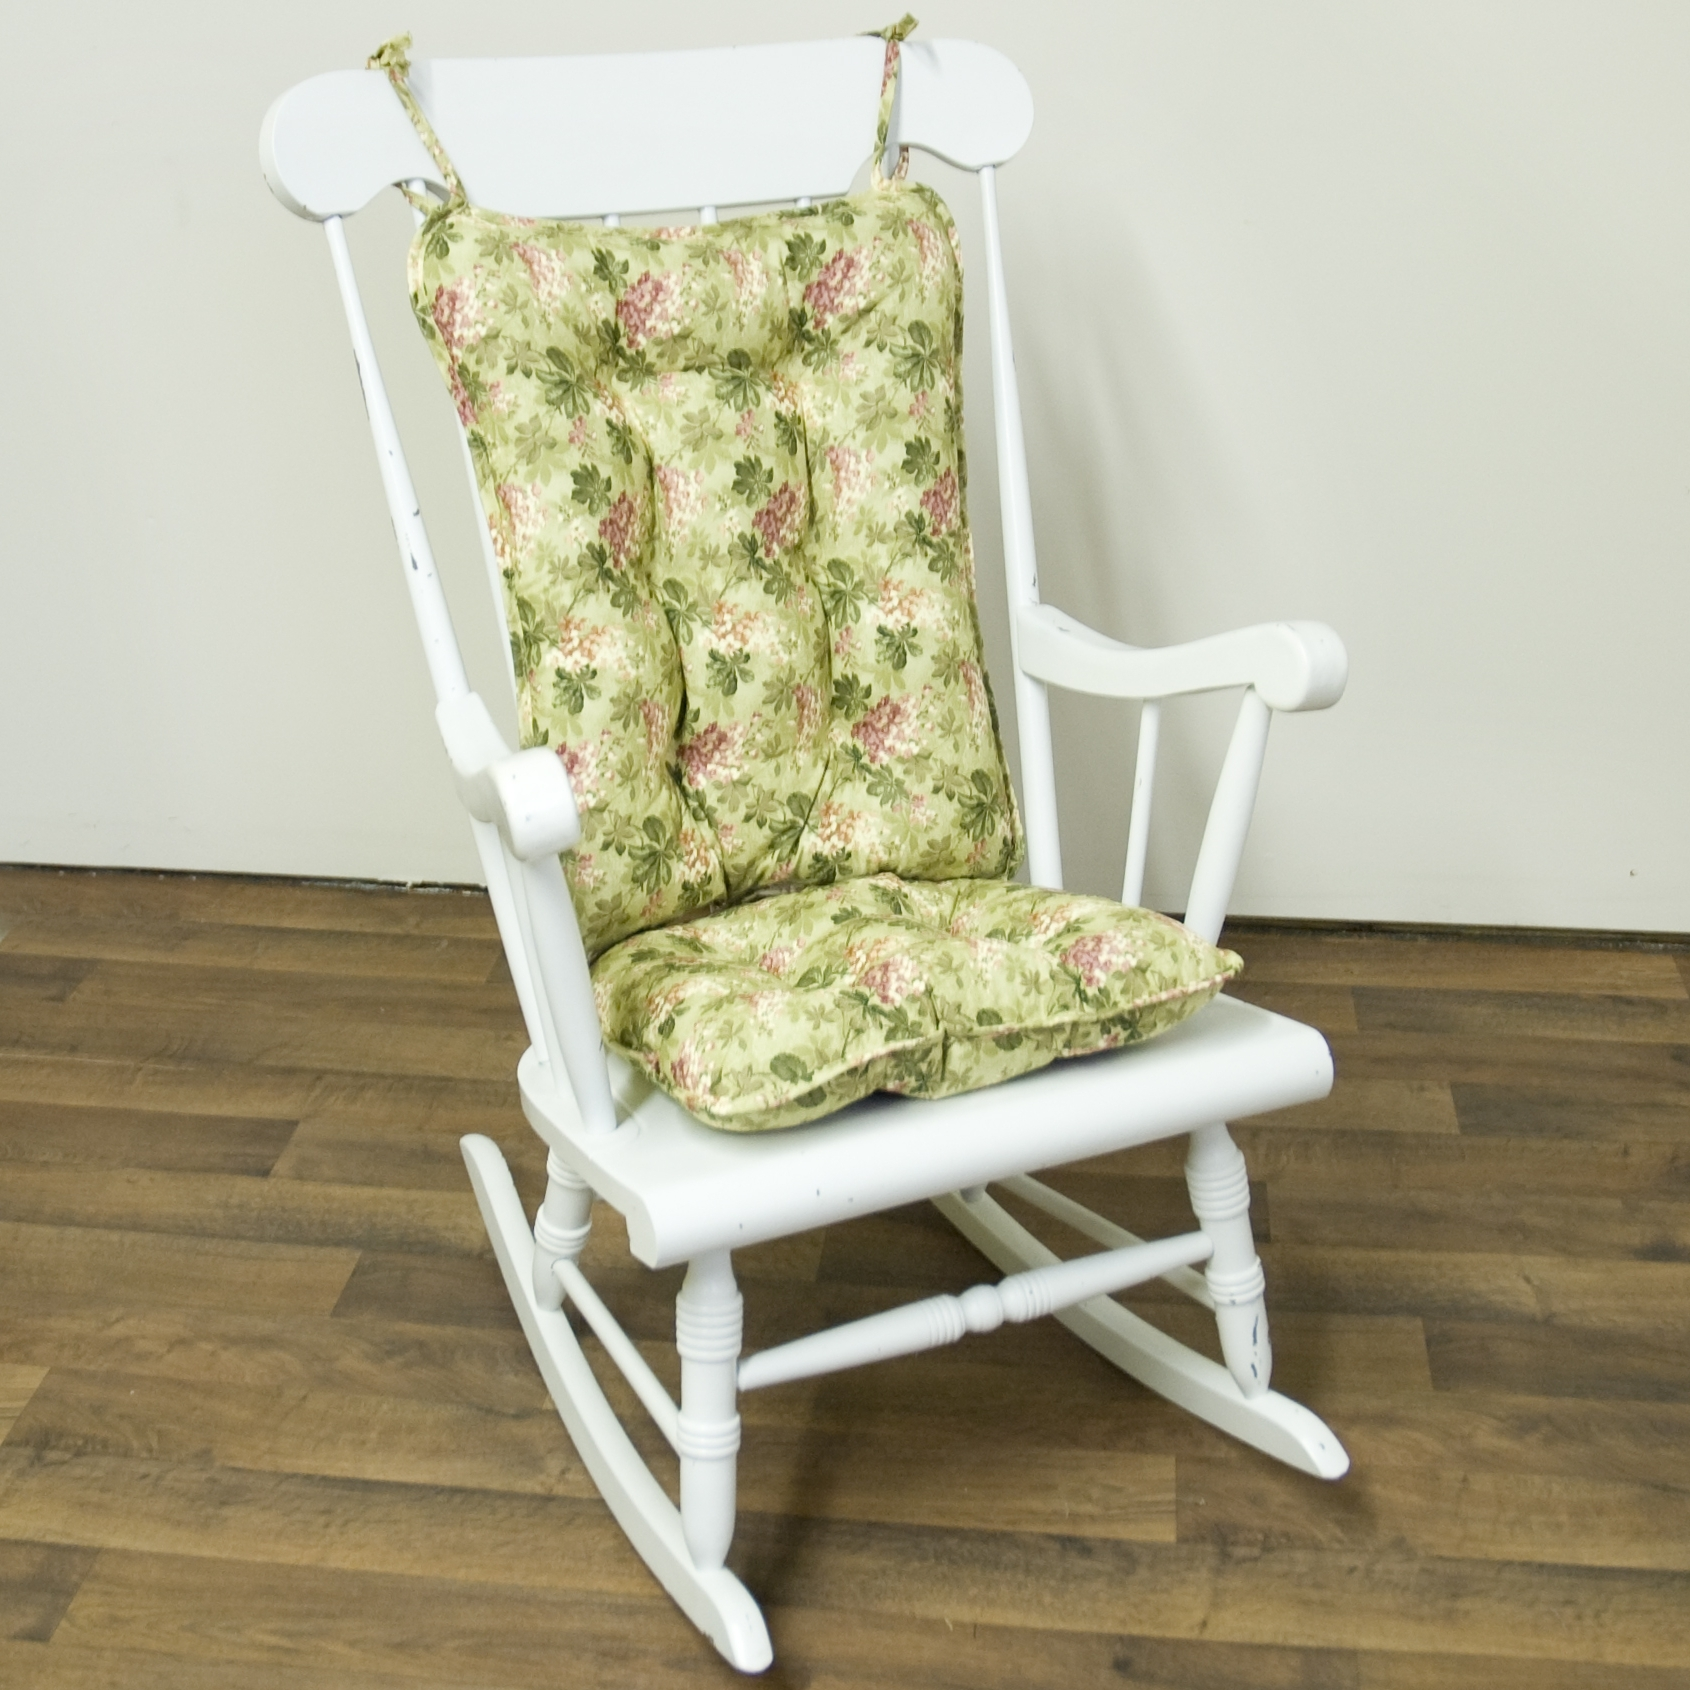 Newest Outdoor Rocking Chairs With Cushions In Outdoor Rocking Chair Cushions Flower : Beautiful Outdoor Rocking (View 13 of 15)